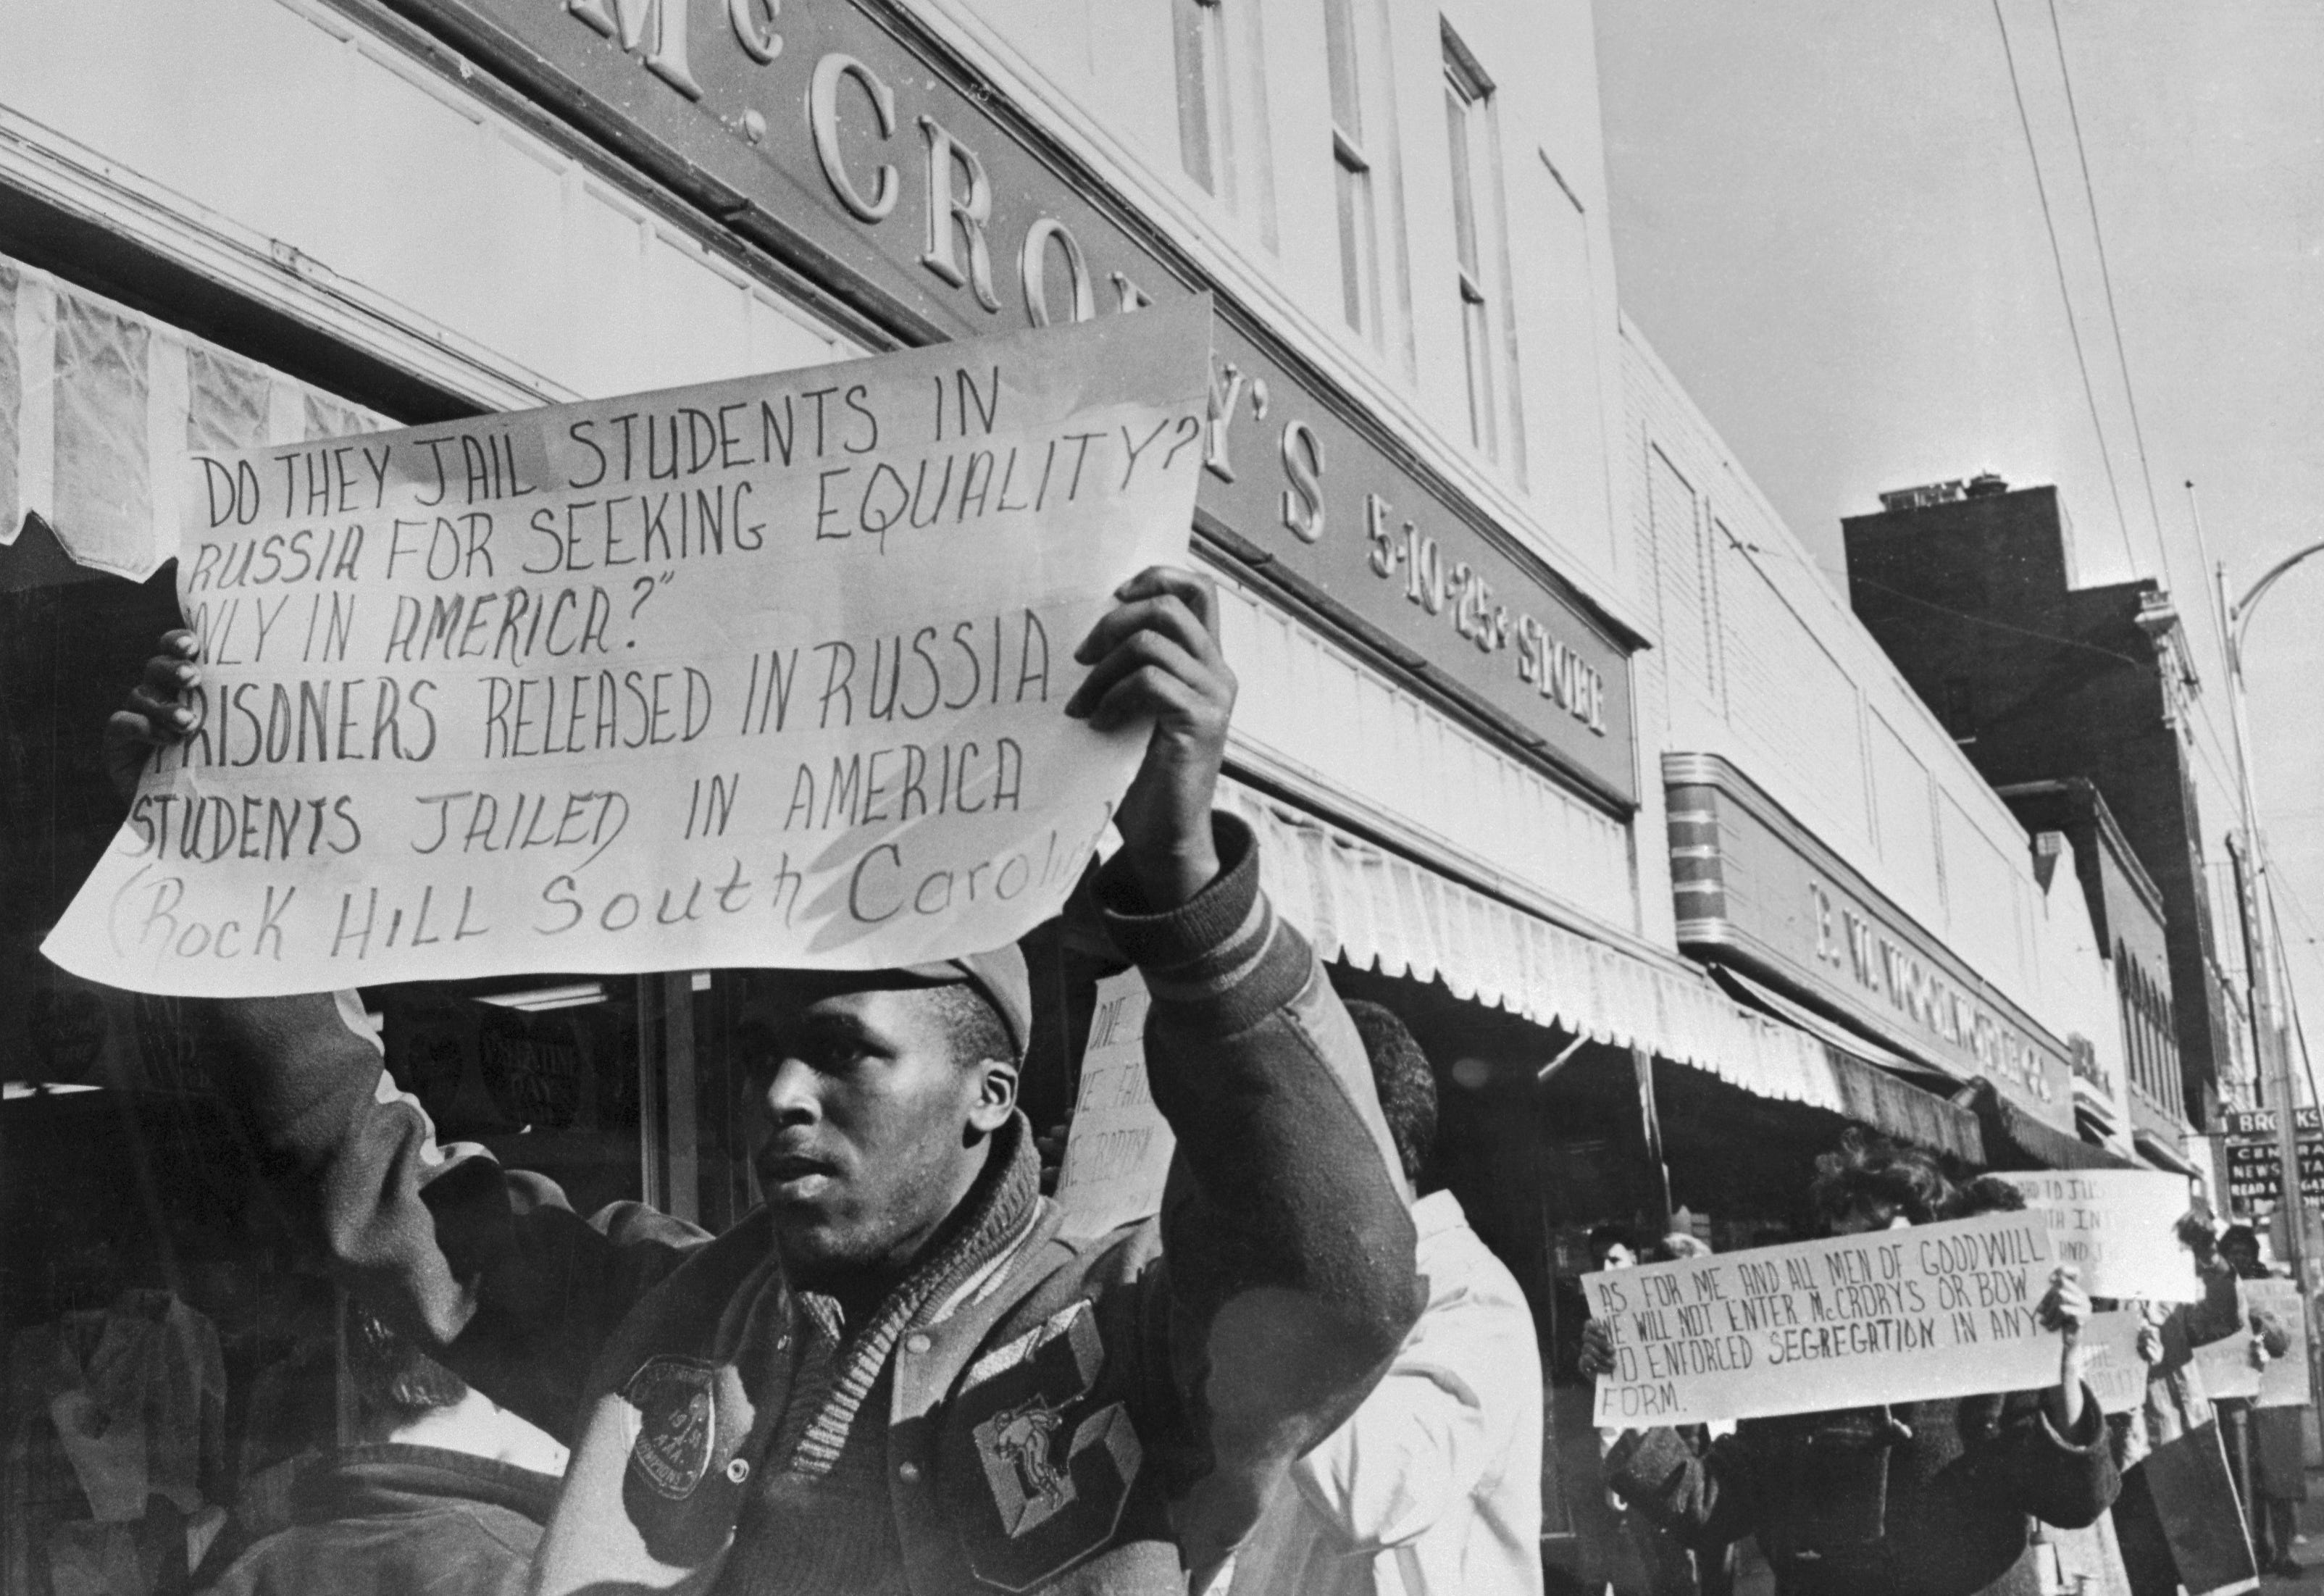 """A student carrying a sign walks past McCrory's Five & Dime during a protest over segregated eating places. The sign read, """"Do they jail students in Russia for seeking equality? Or only in America? Prisoners released in Russia, students jailed in America."""""""